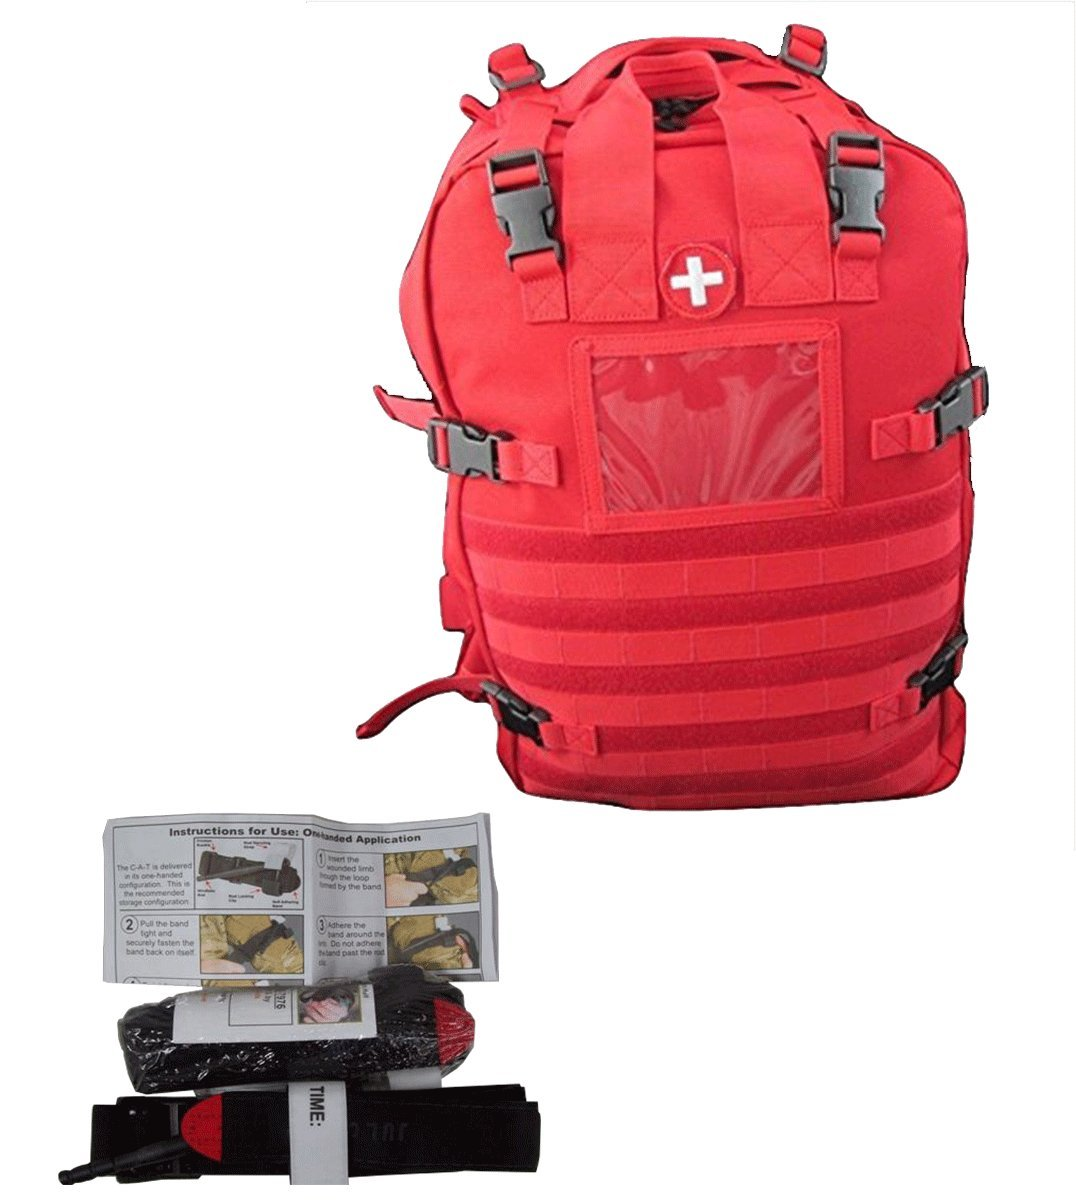 Medical Bags Fully Stocked - Stomp Medical Kit Bag With CAT Tourniquet Bundle (Red)